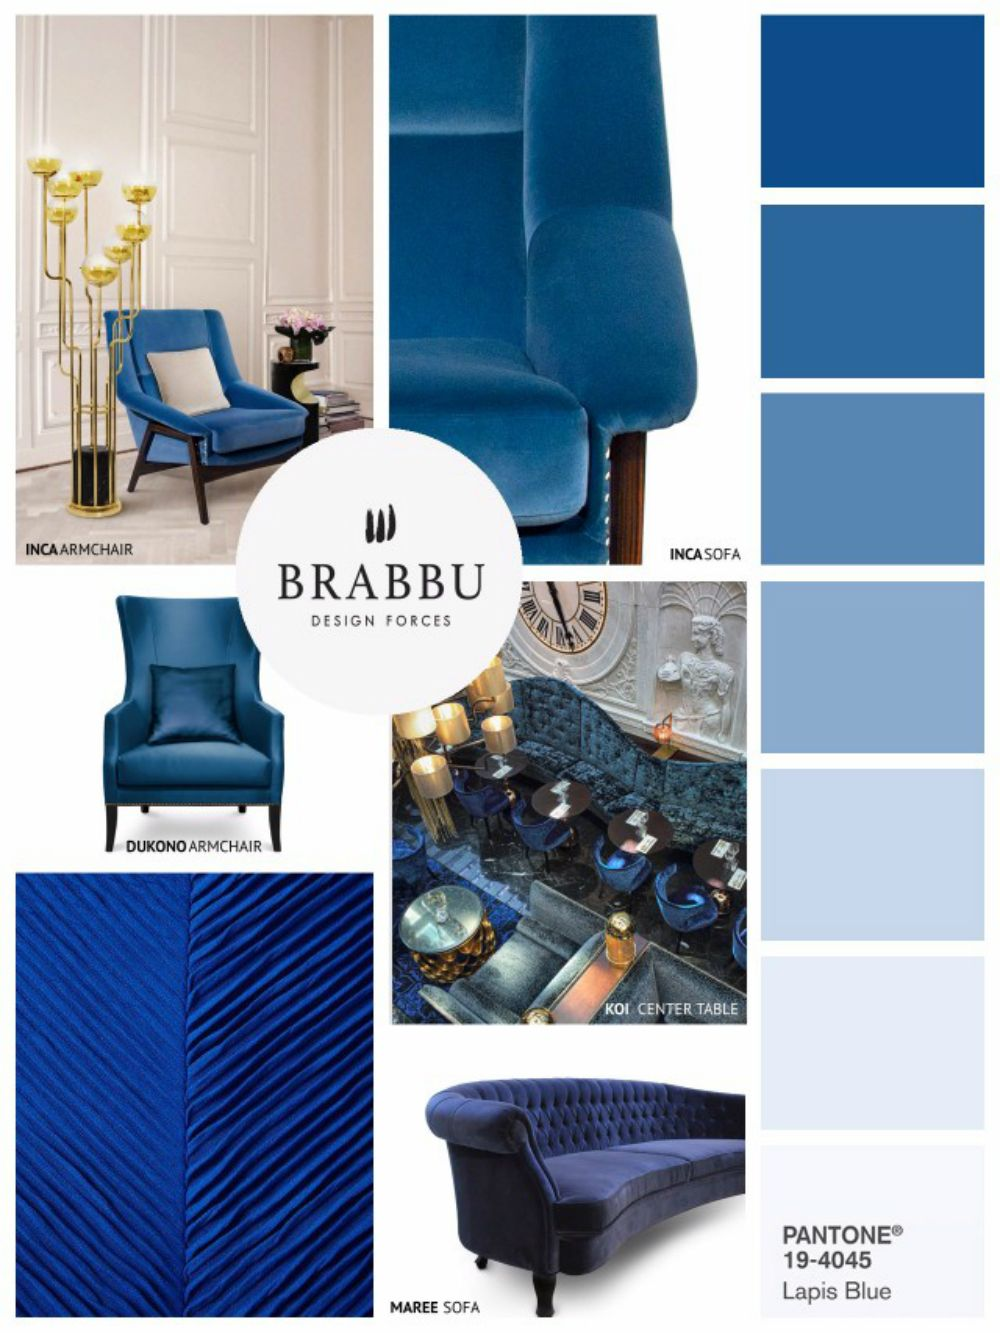 at my design agenda we particularly love blue so we are pretty happy with this color trend